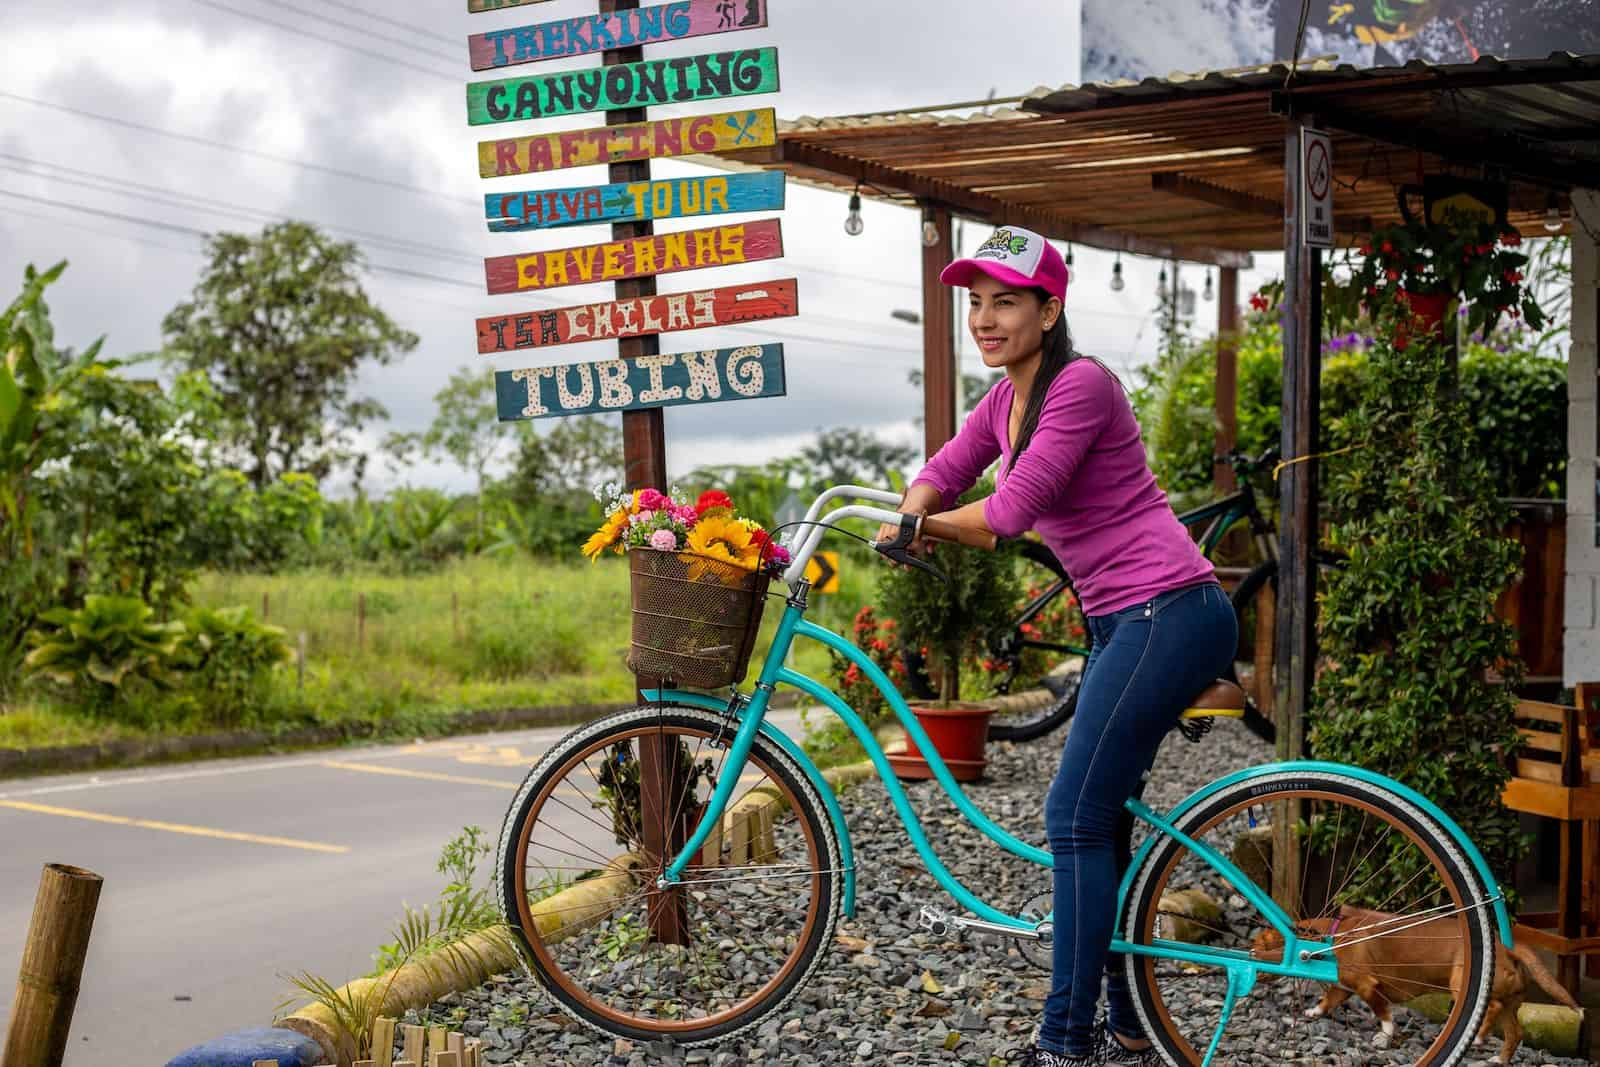 """A woman in a pink shirt, jeans and a baseball cap sits on a turquoise bike on a roadside, with a sign behind her that reads, """"Trekking, Canyoning, Rafting, Tubing,"""" etc."""